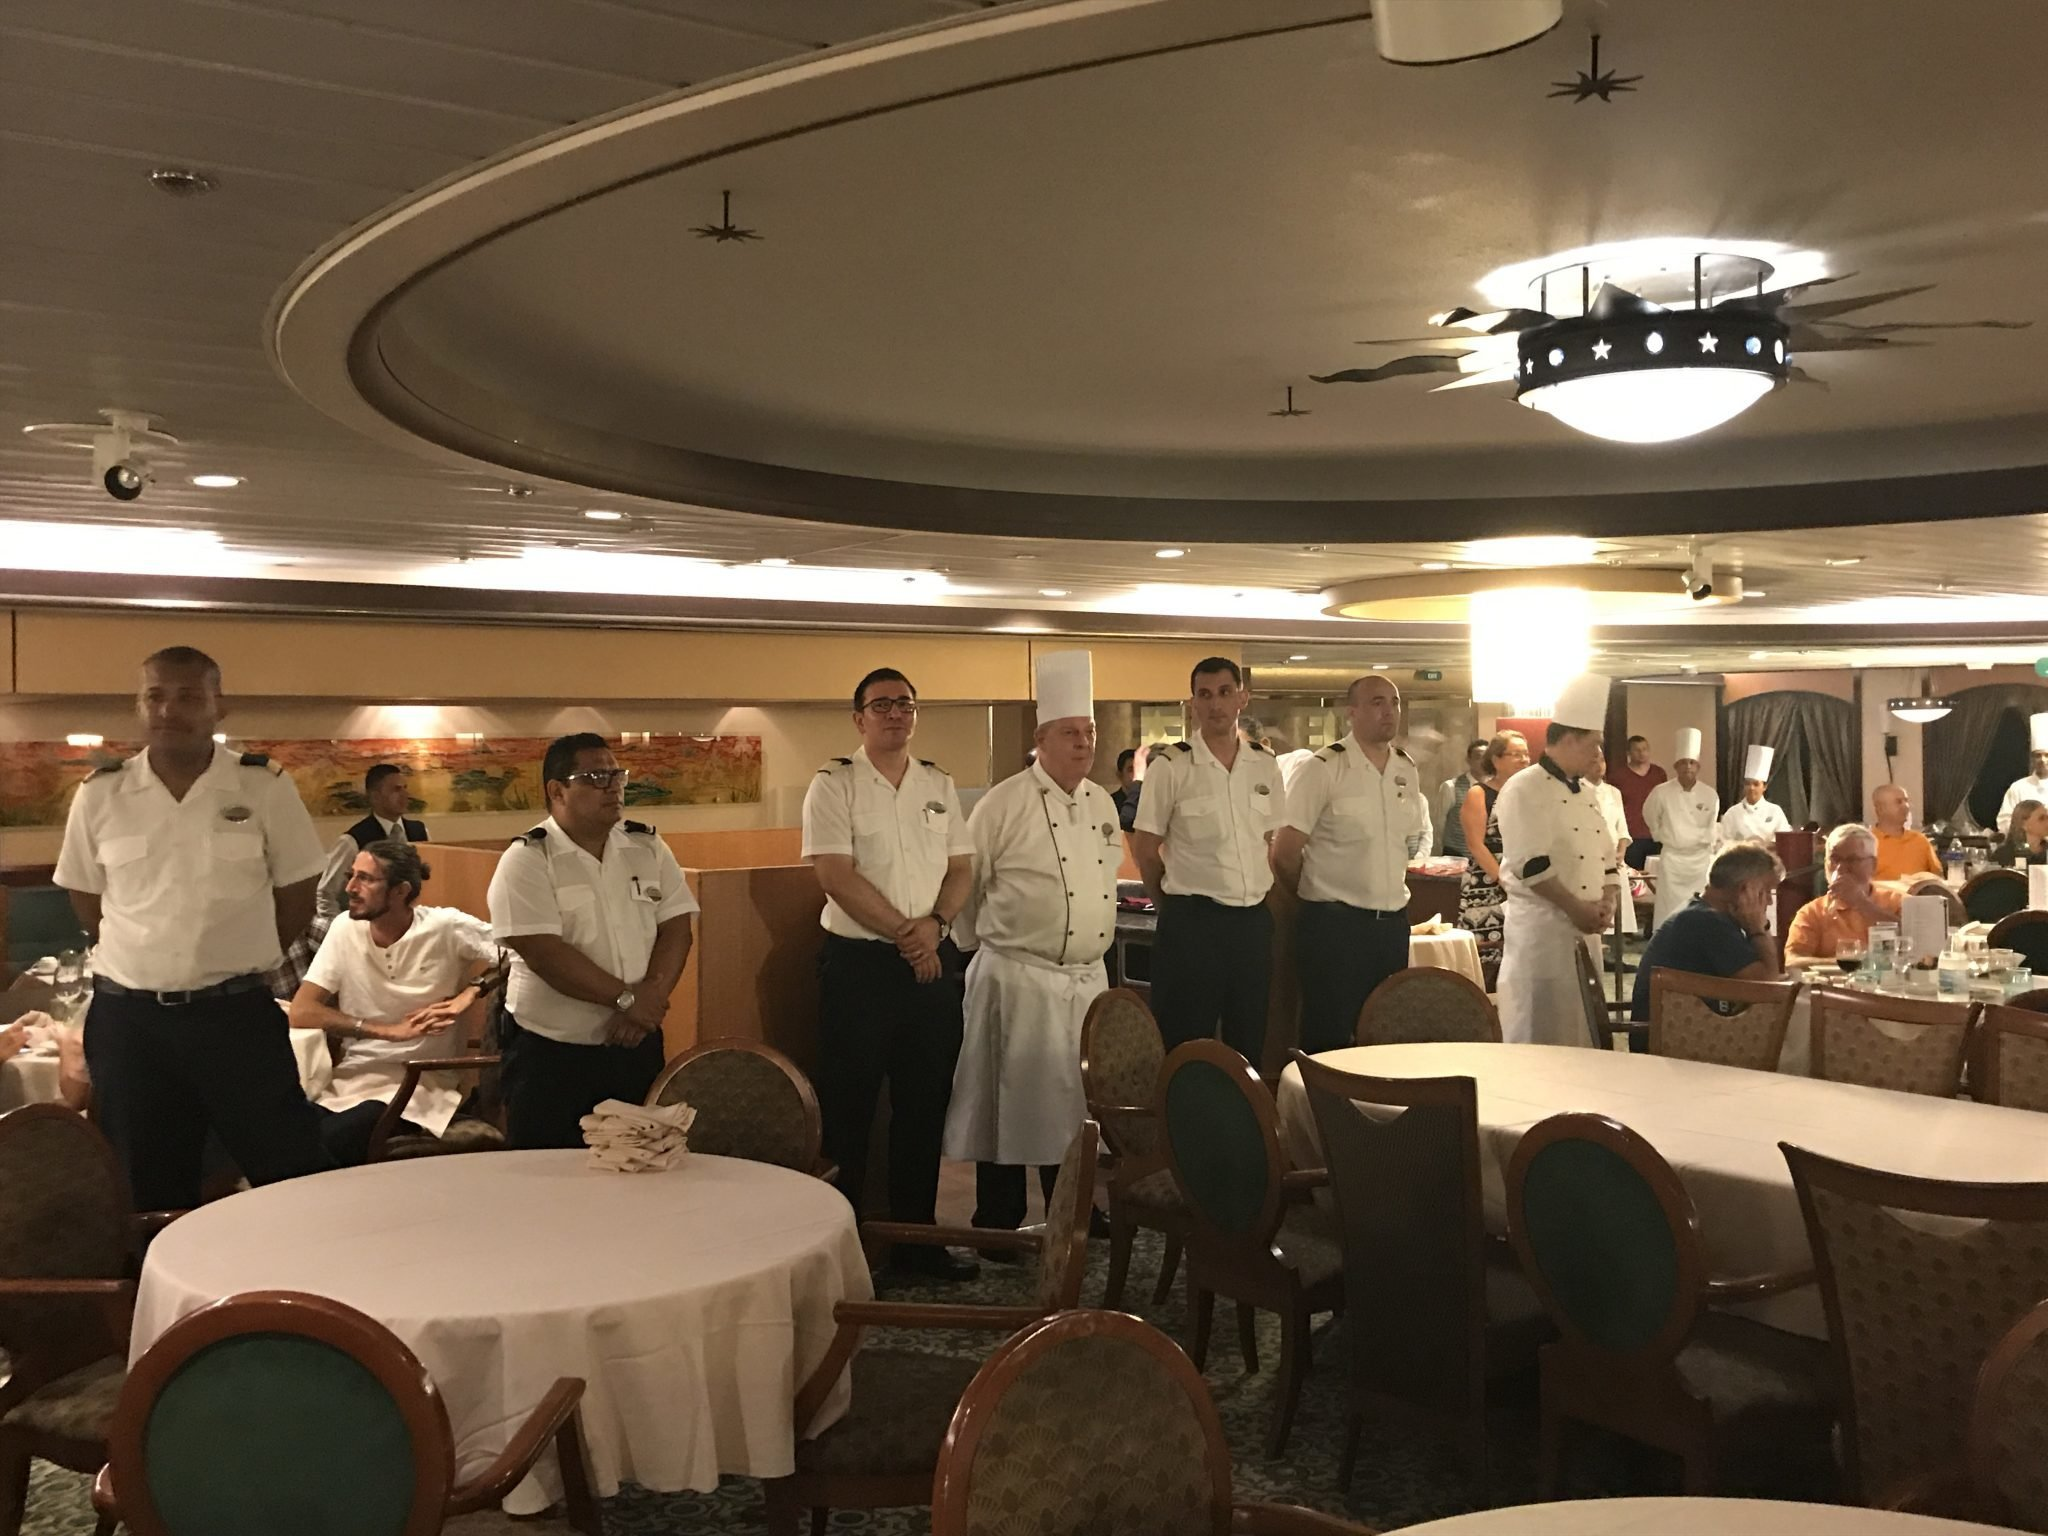 Chefs e garçons no restaurante principal do navio Monarch